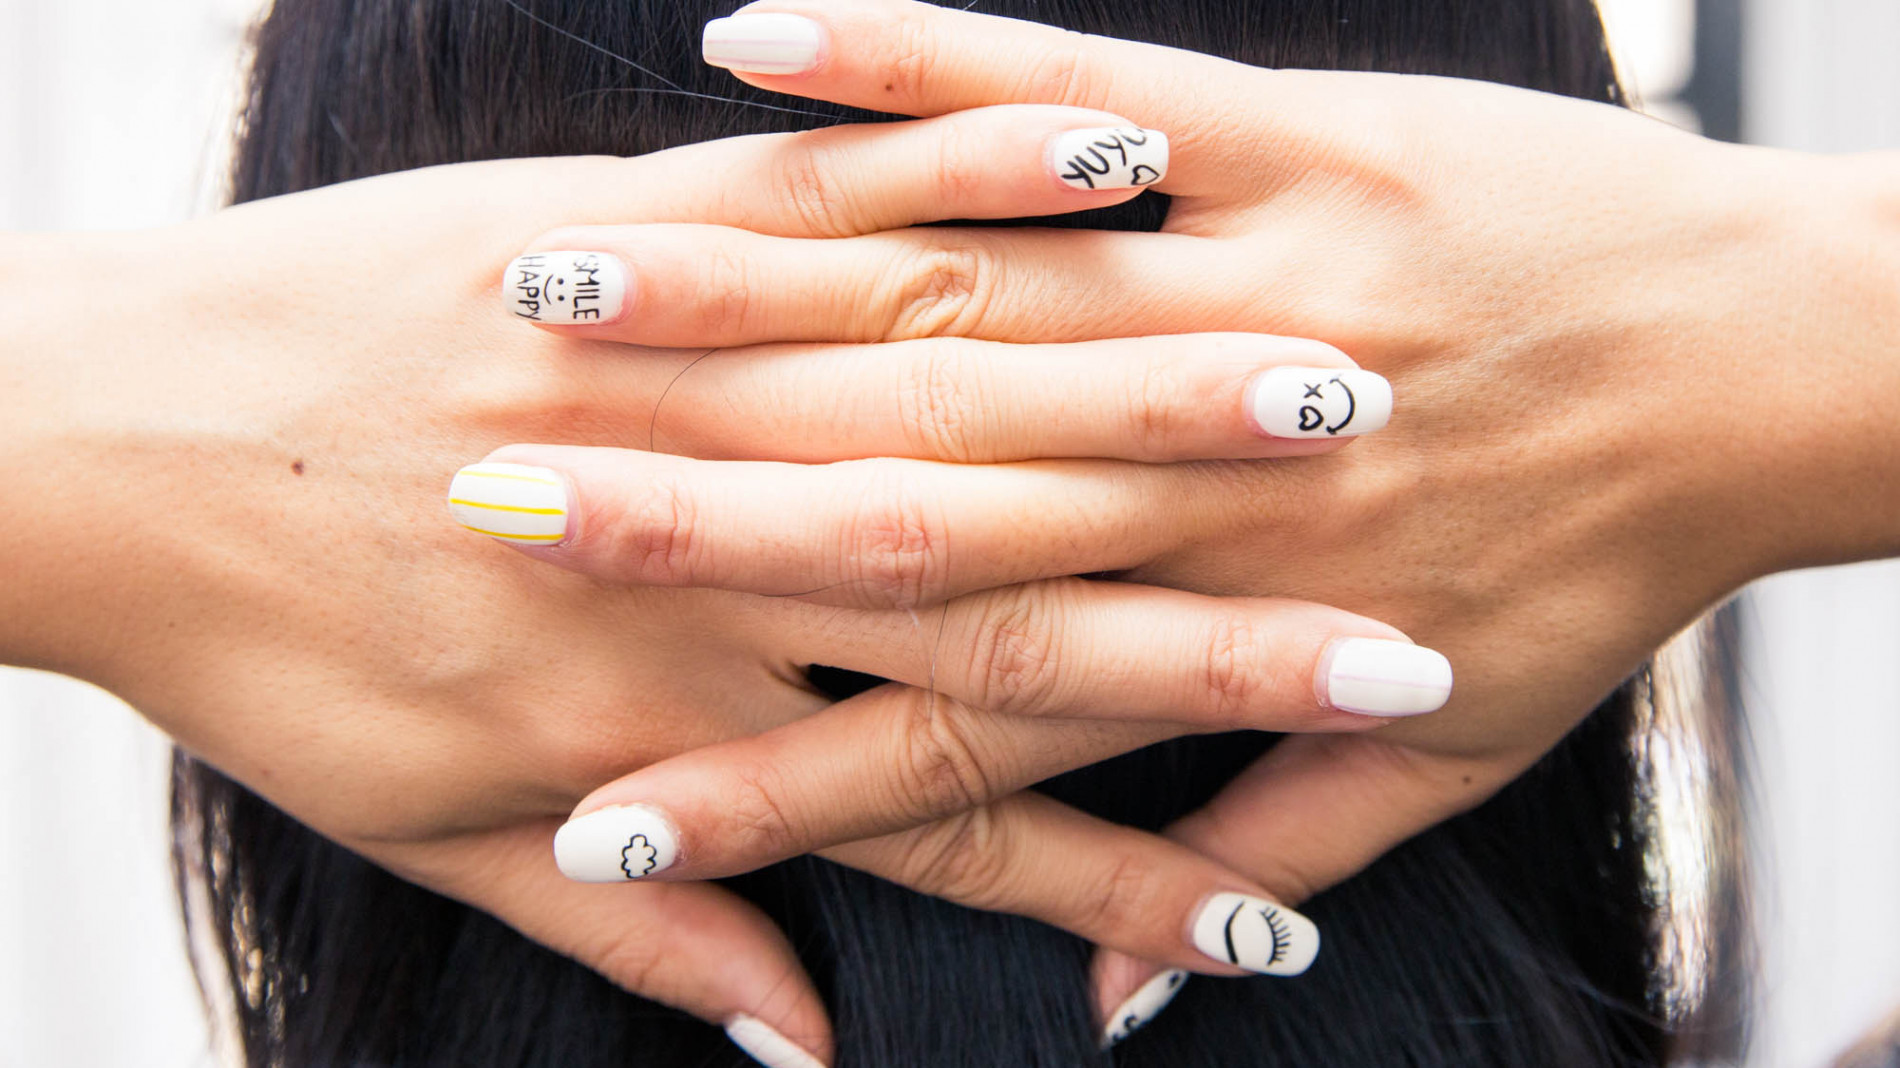 WARNING SIGNS YOU NEED TO LAY OFF YOUR MANI-PEDI ROUTINE - Dr. Dana Stern gives us the nail health 411.